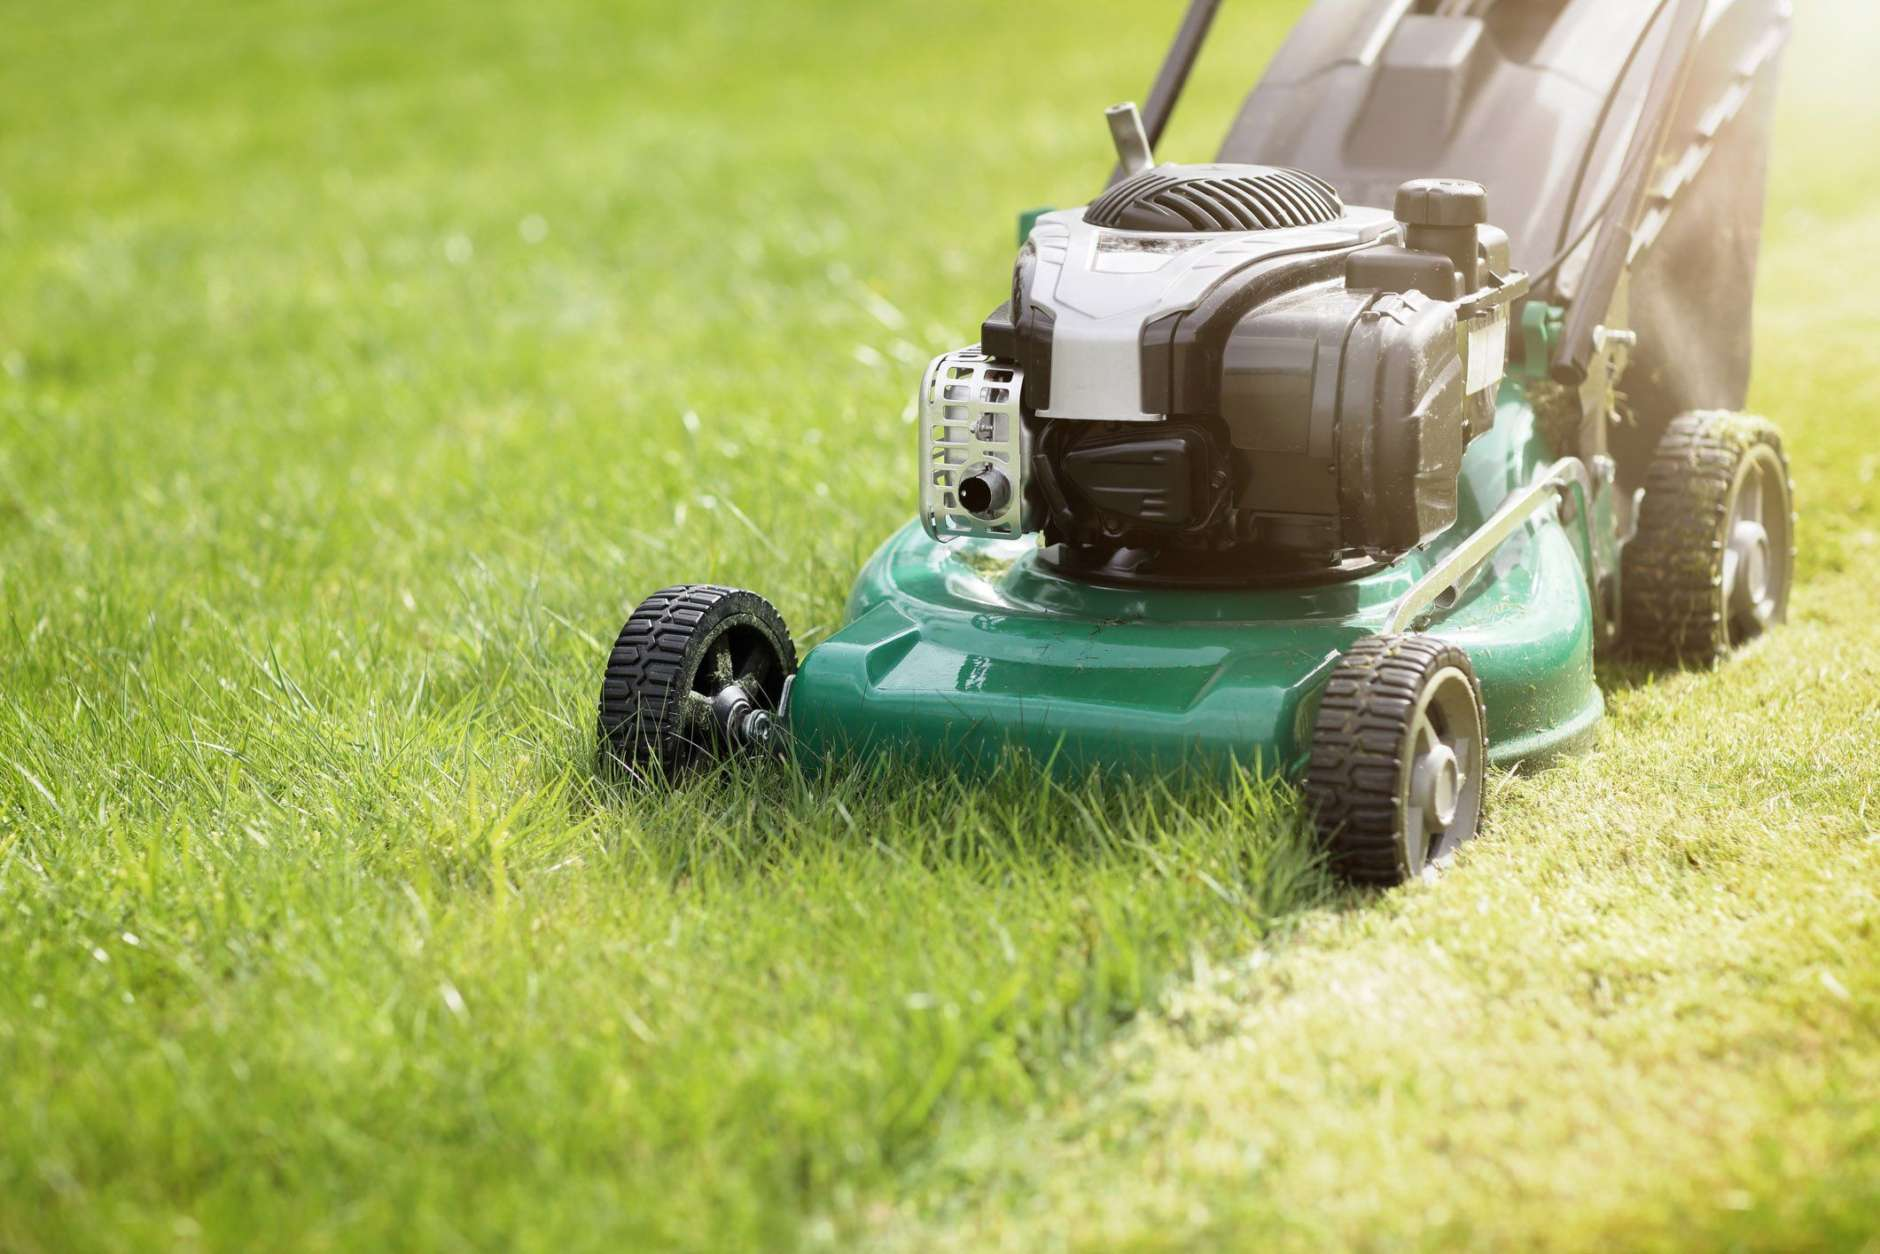 By using a sod lawn, you can turn a struggling lawn into a lush, green carpet. (Thinkstock)